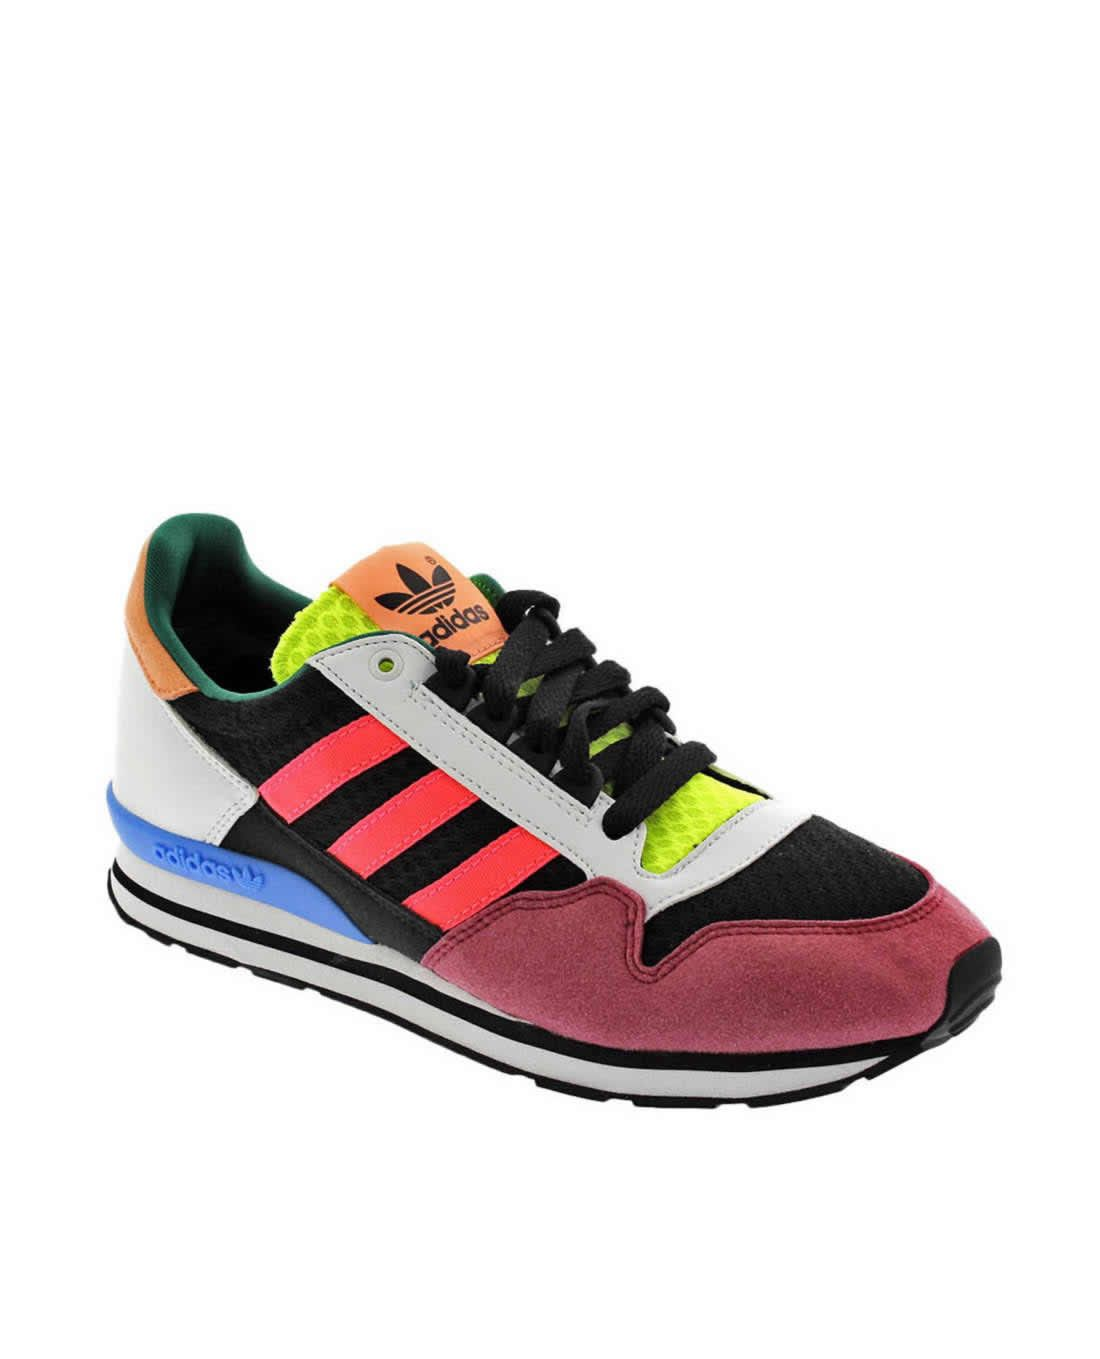 Zapatillas ADIDAS 500 CF IZapatillas ZX multicolor q3jA54RL